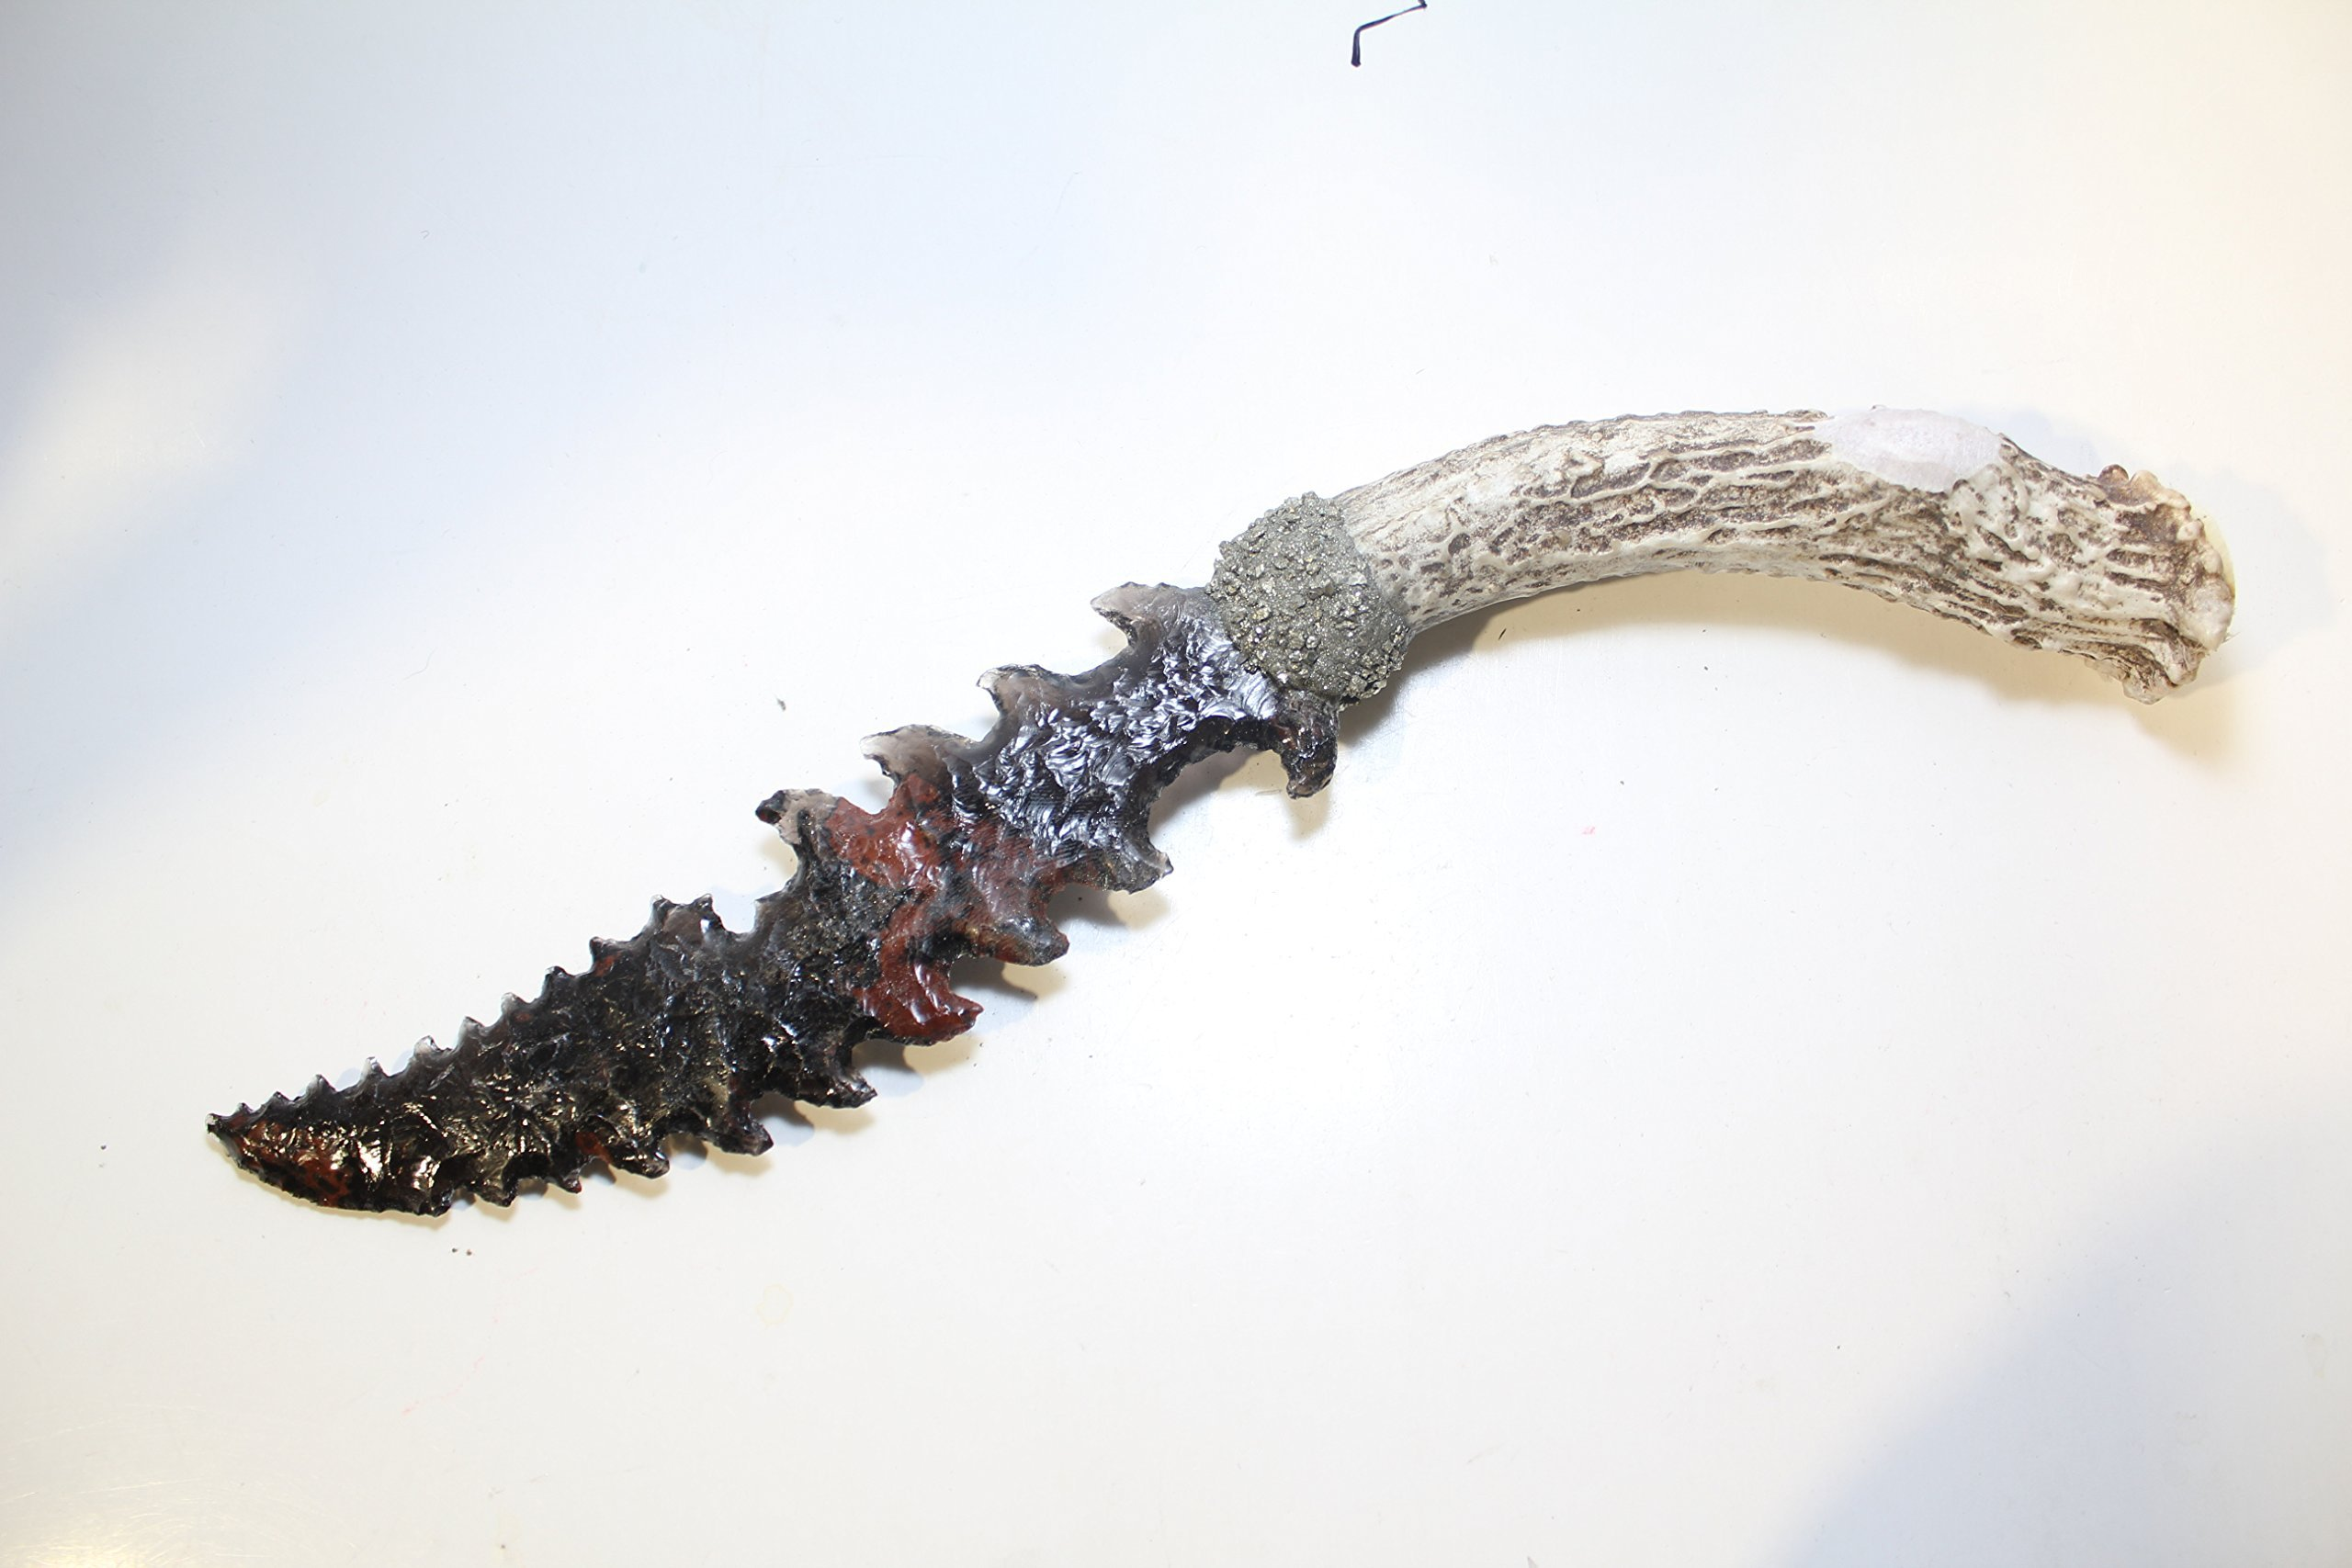 Triple Flow Triflow Obsidian Knife Blade Hafted on Deer Antler Handle Using Crushed Pyrite Mayan Eccentric Reverse Barbed Dagger Game of Thrones Inspired